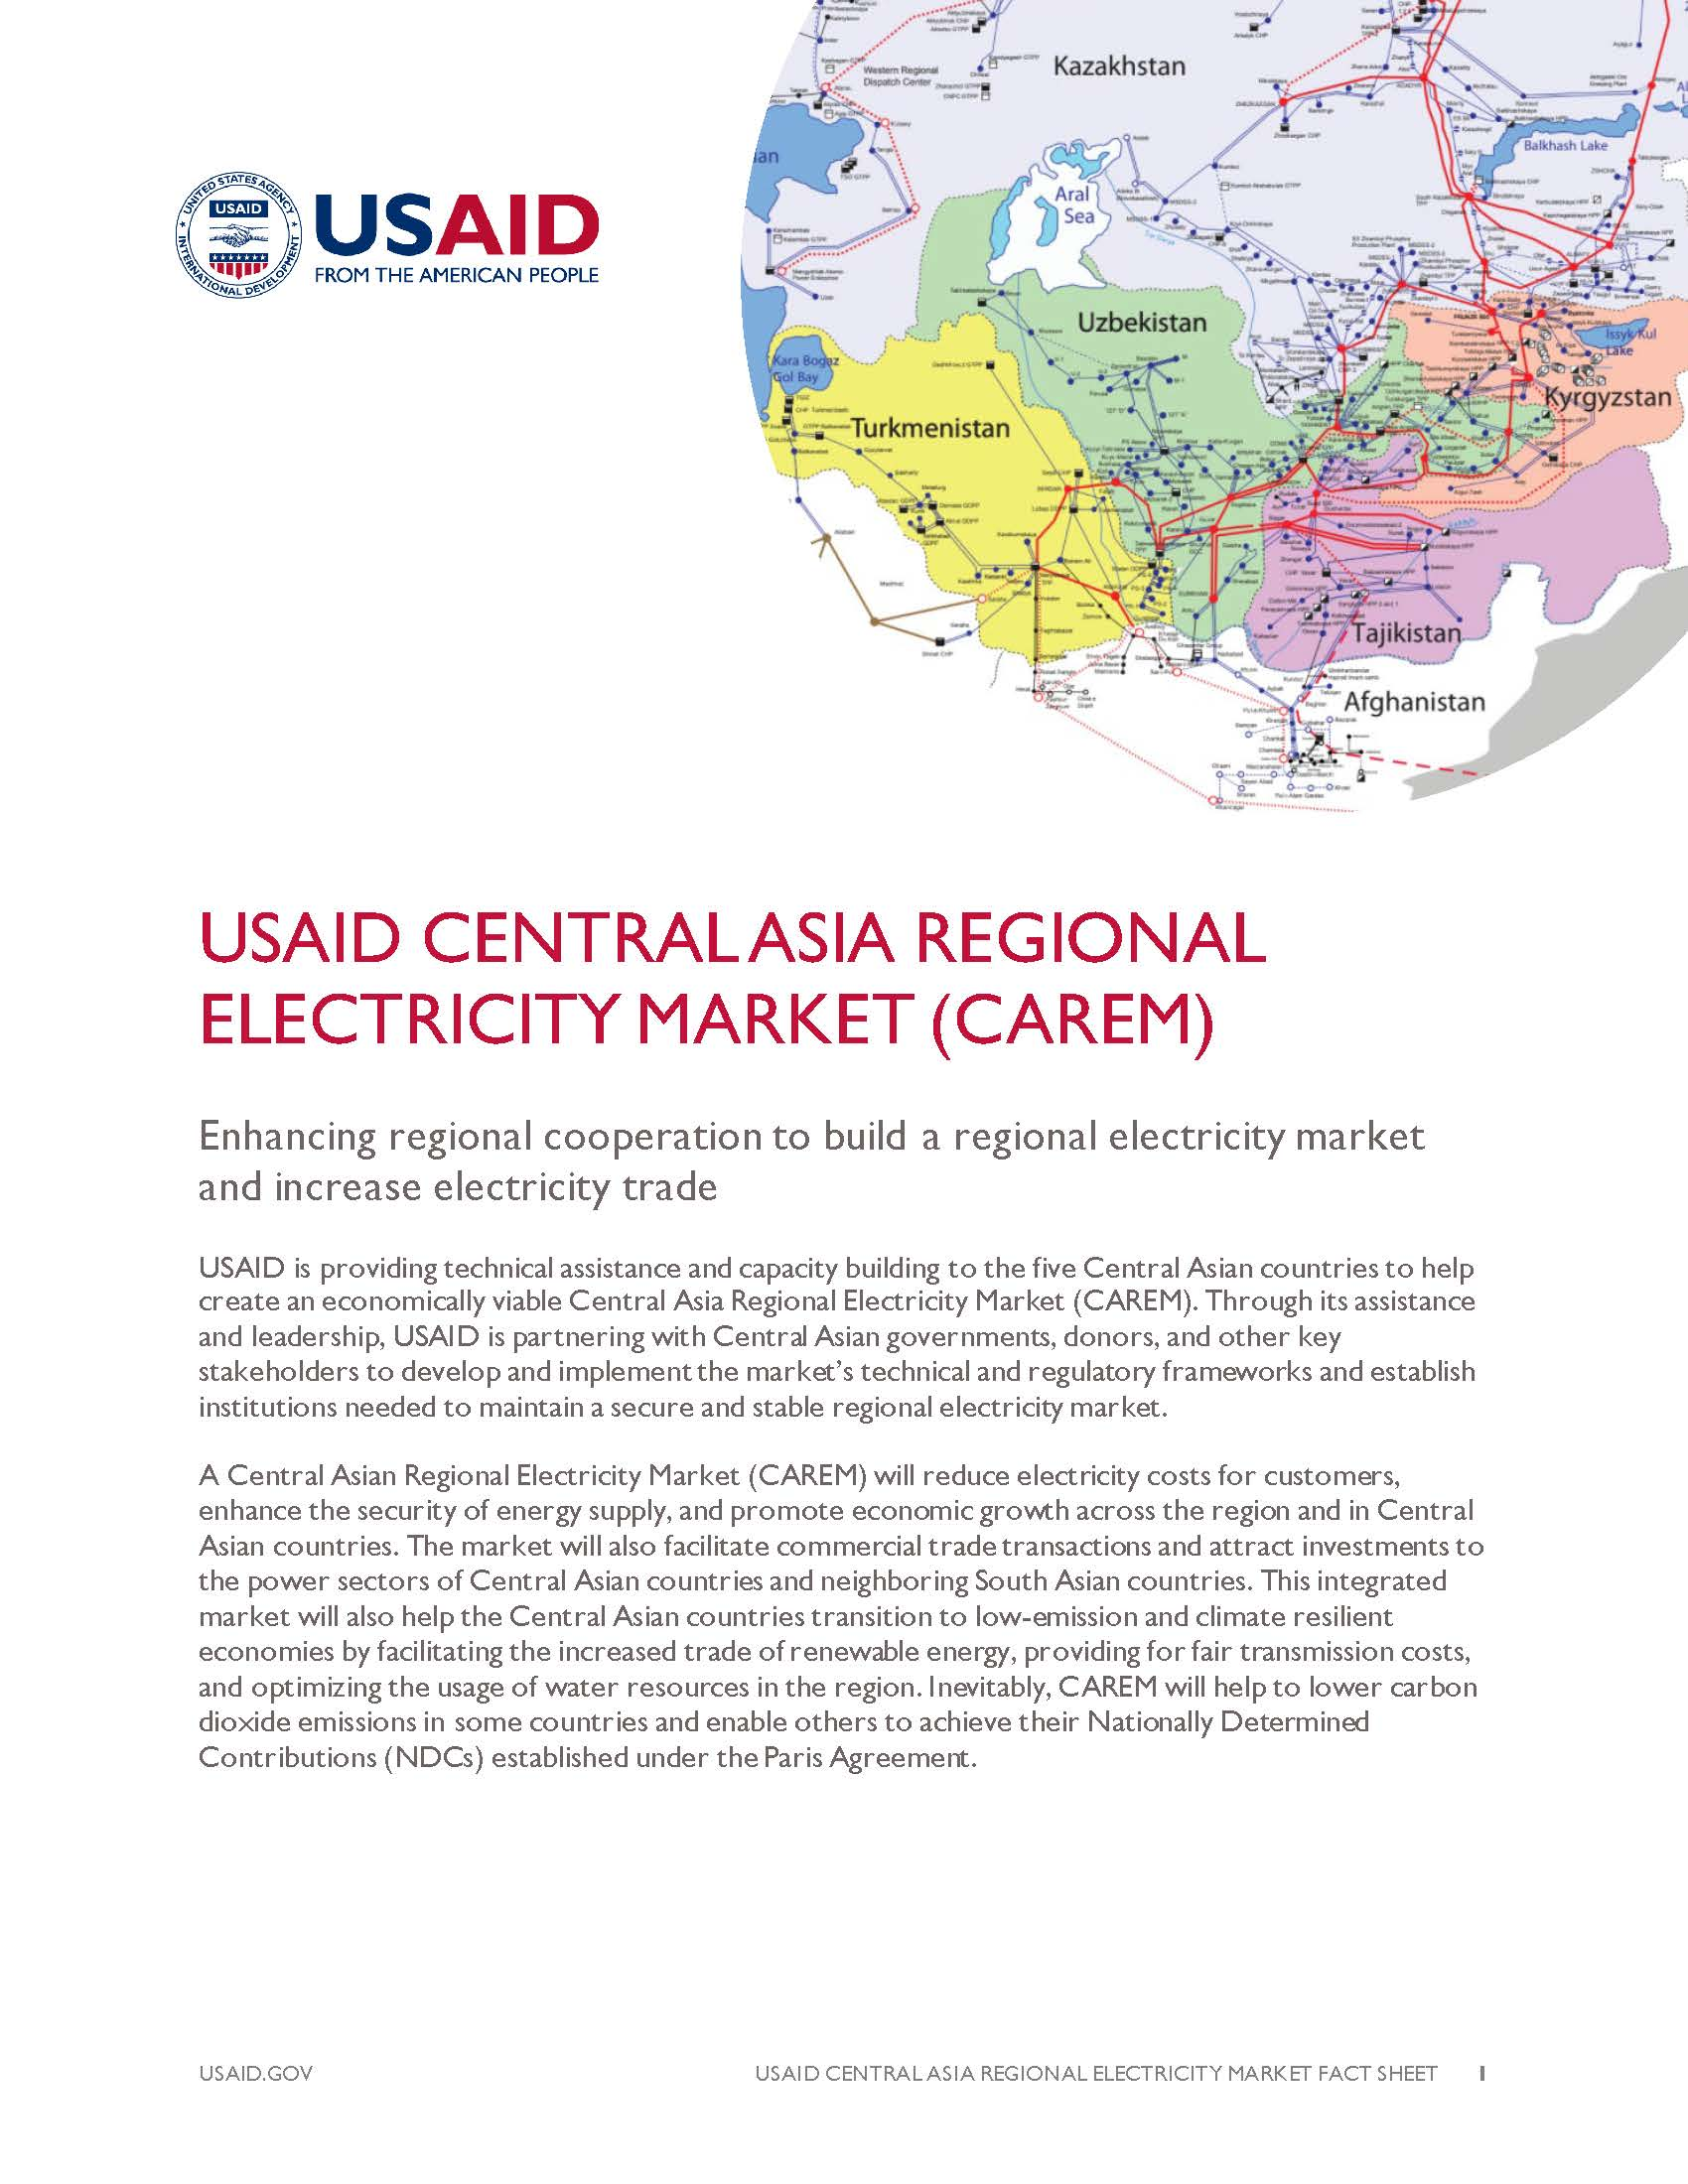 USAID's Central Asia Regional Electricity Market